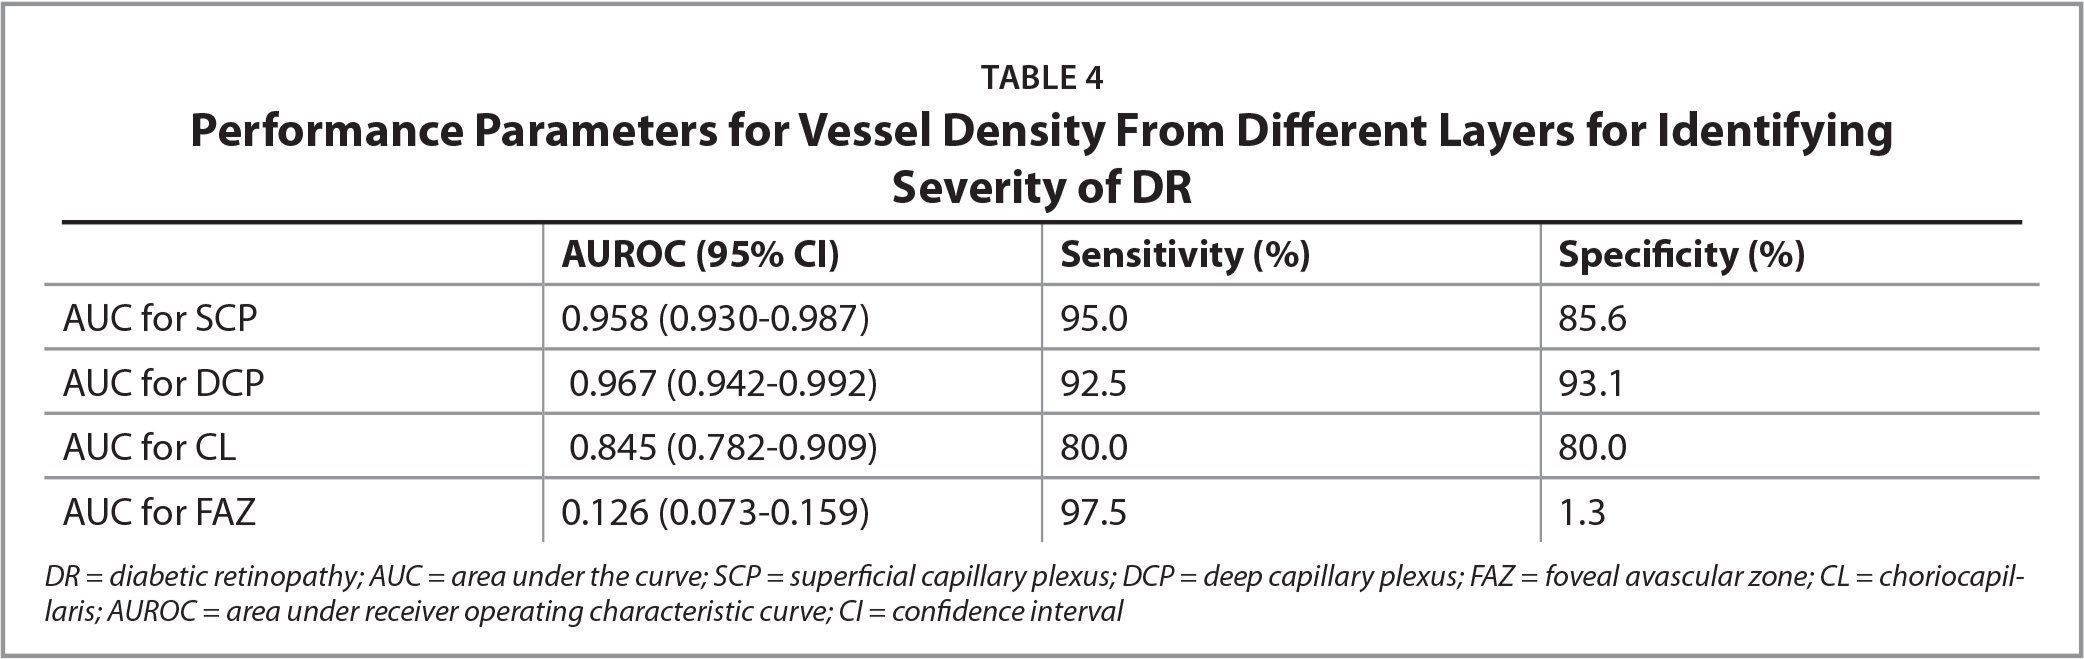 Performance Parameters for Vessel Density From Different Layers for IdentifyingSeverity of DR